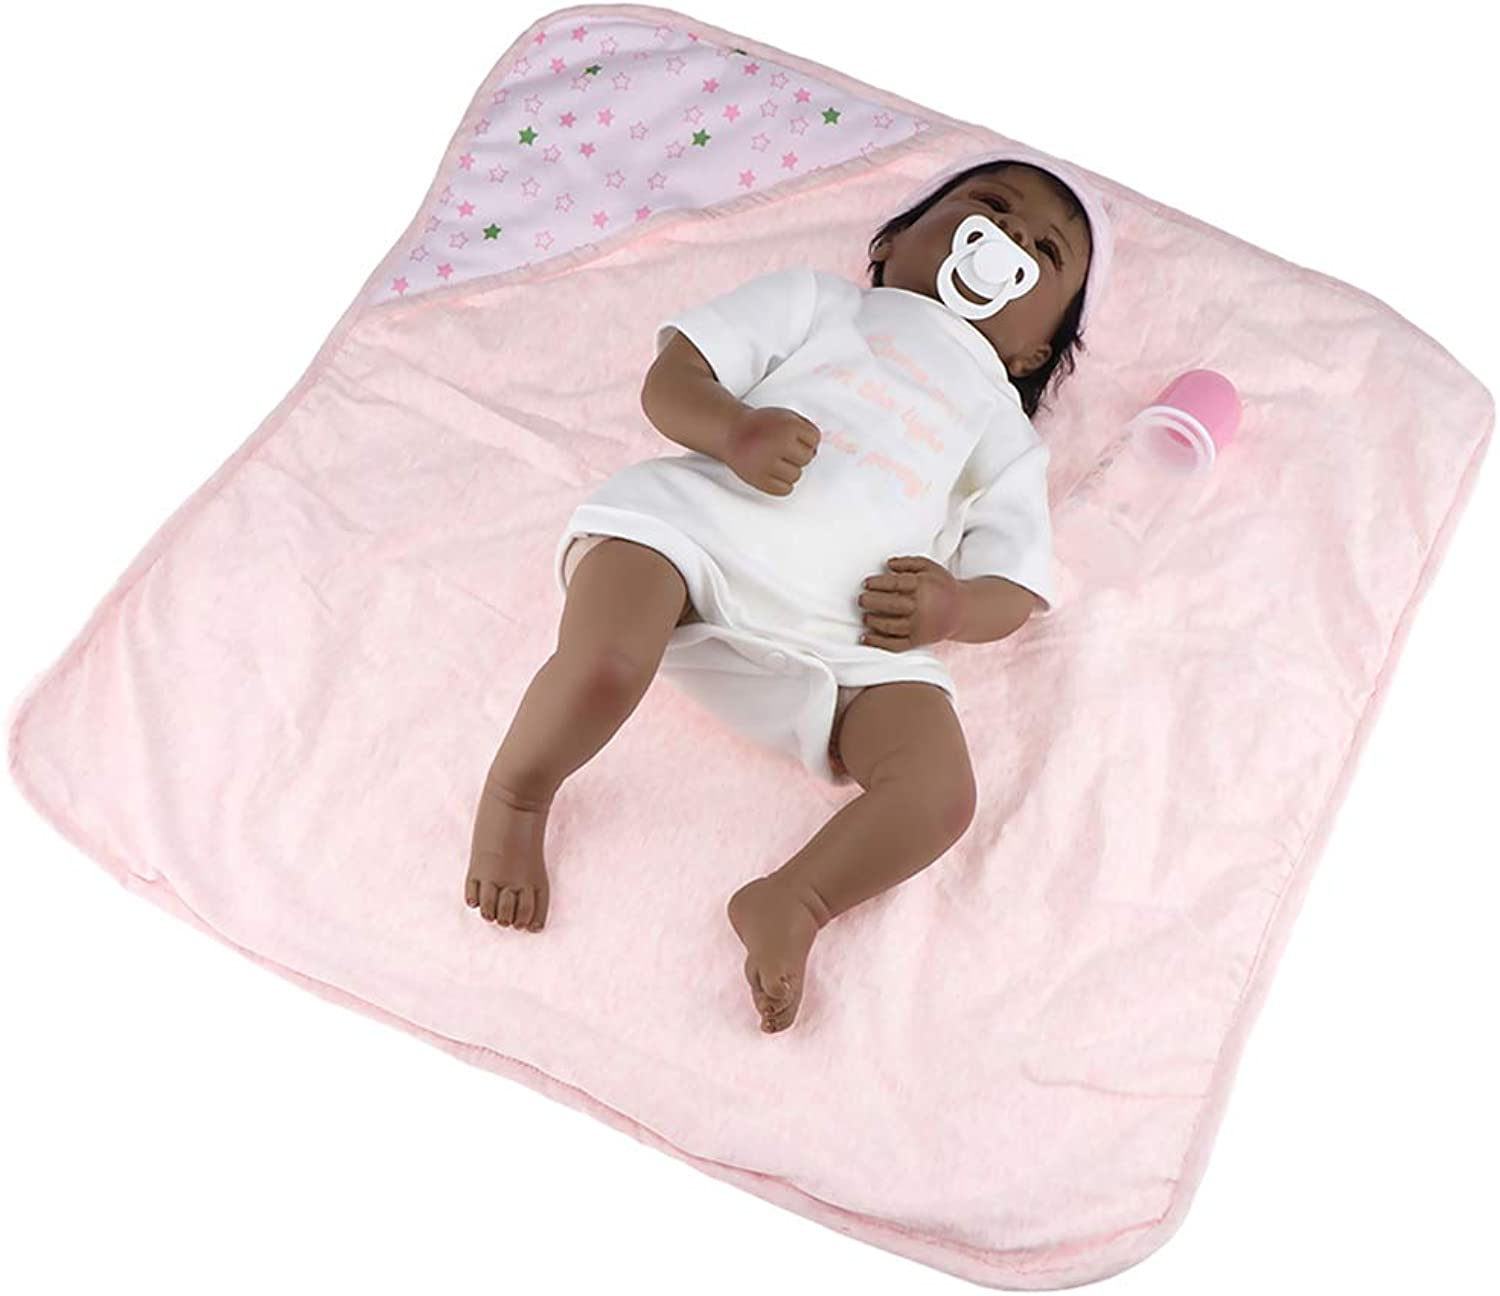 Perfk 20inch 50cm Real Looking Baby Boy Black Doll Silicone Full Body, for Toddlers